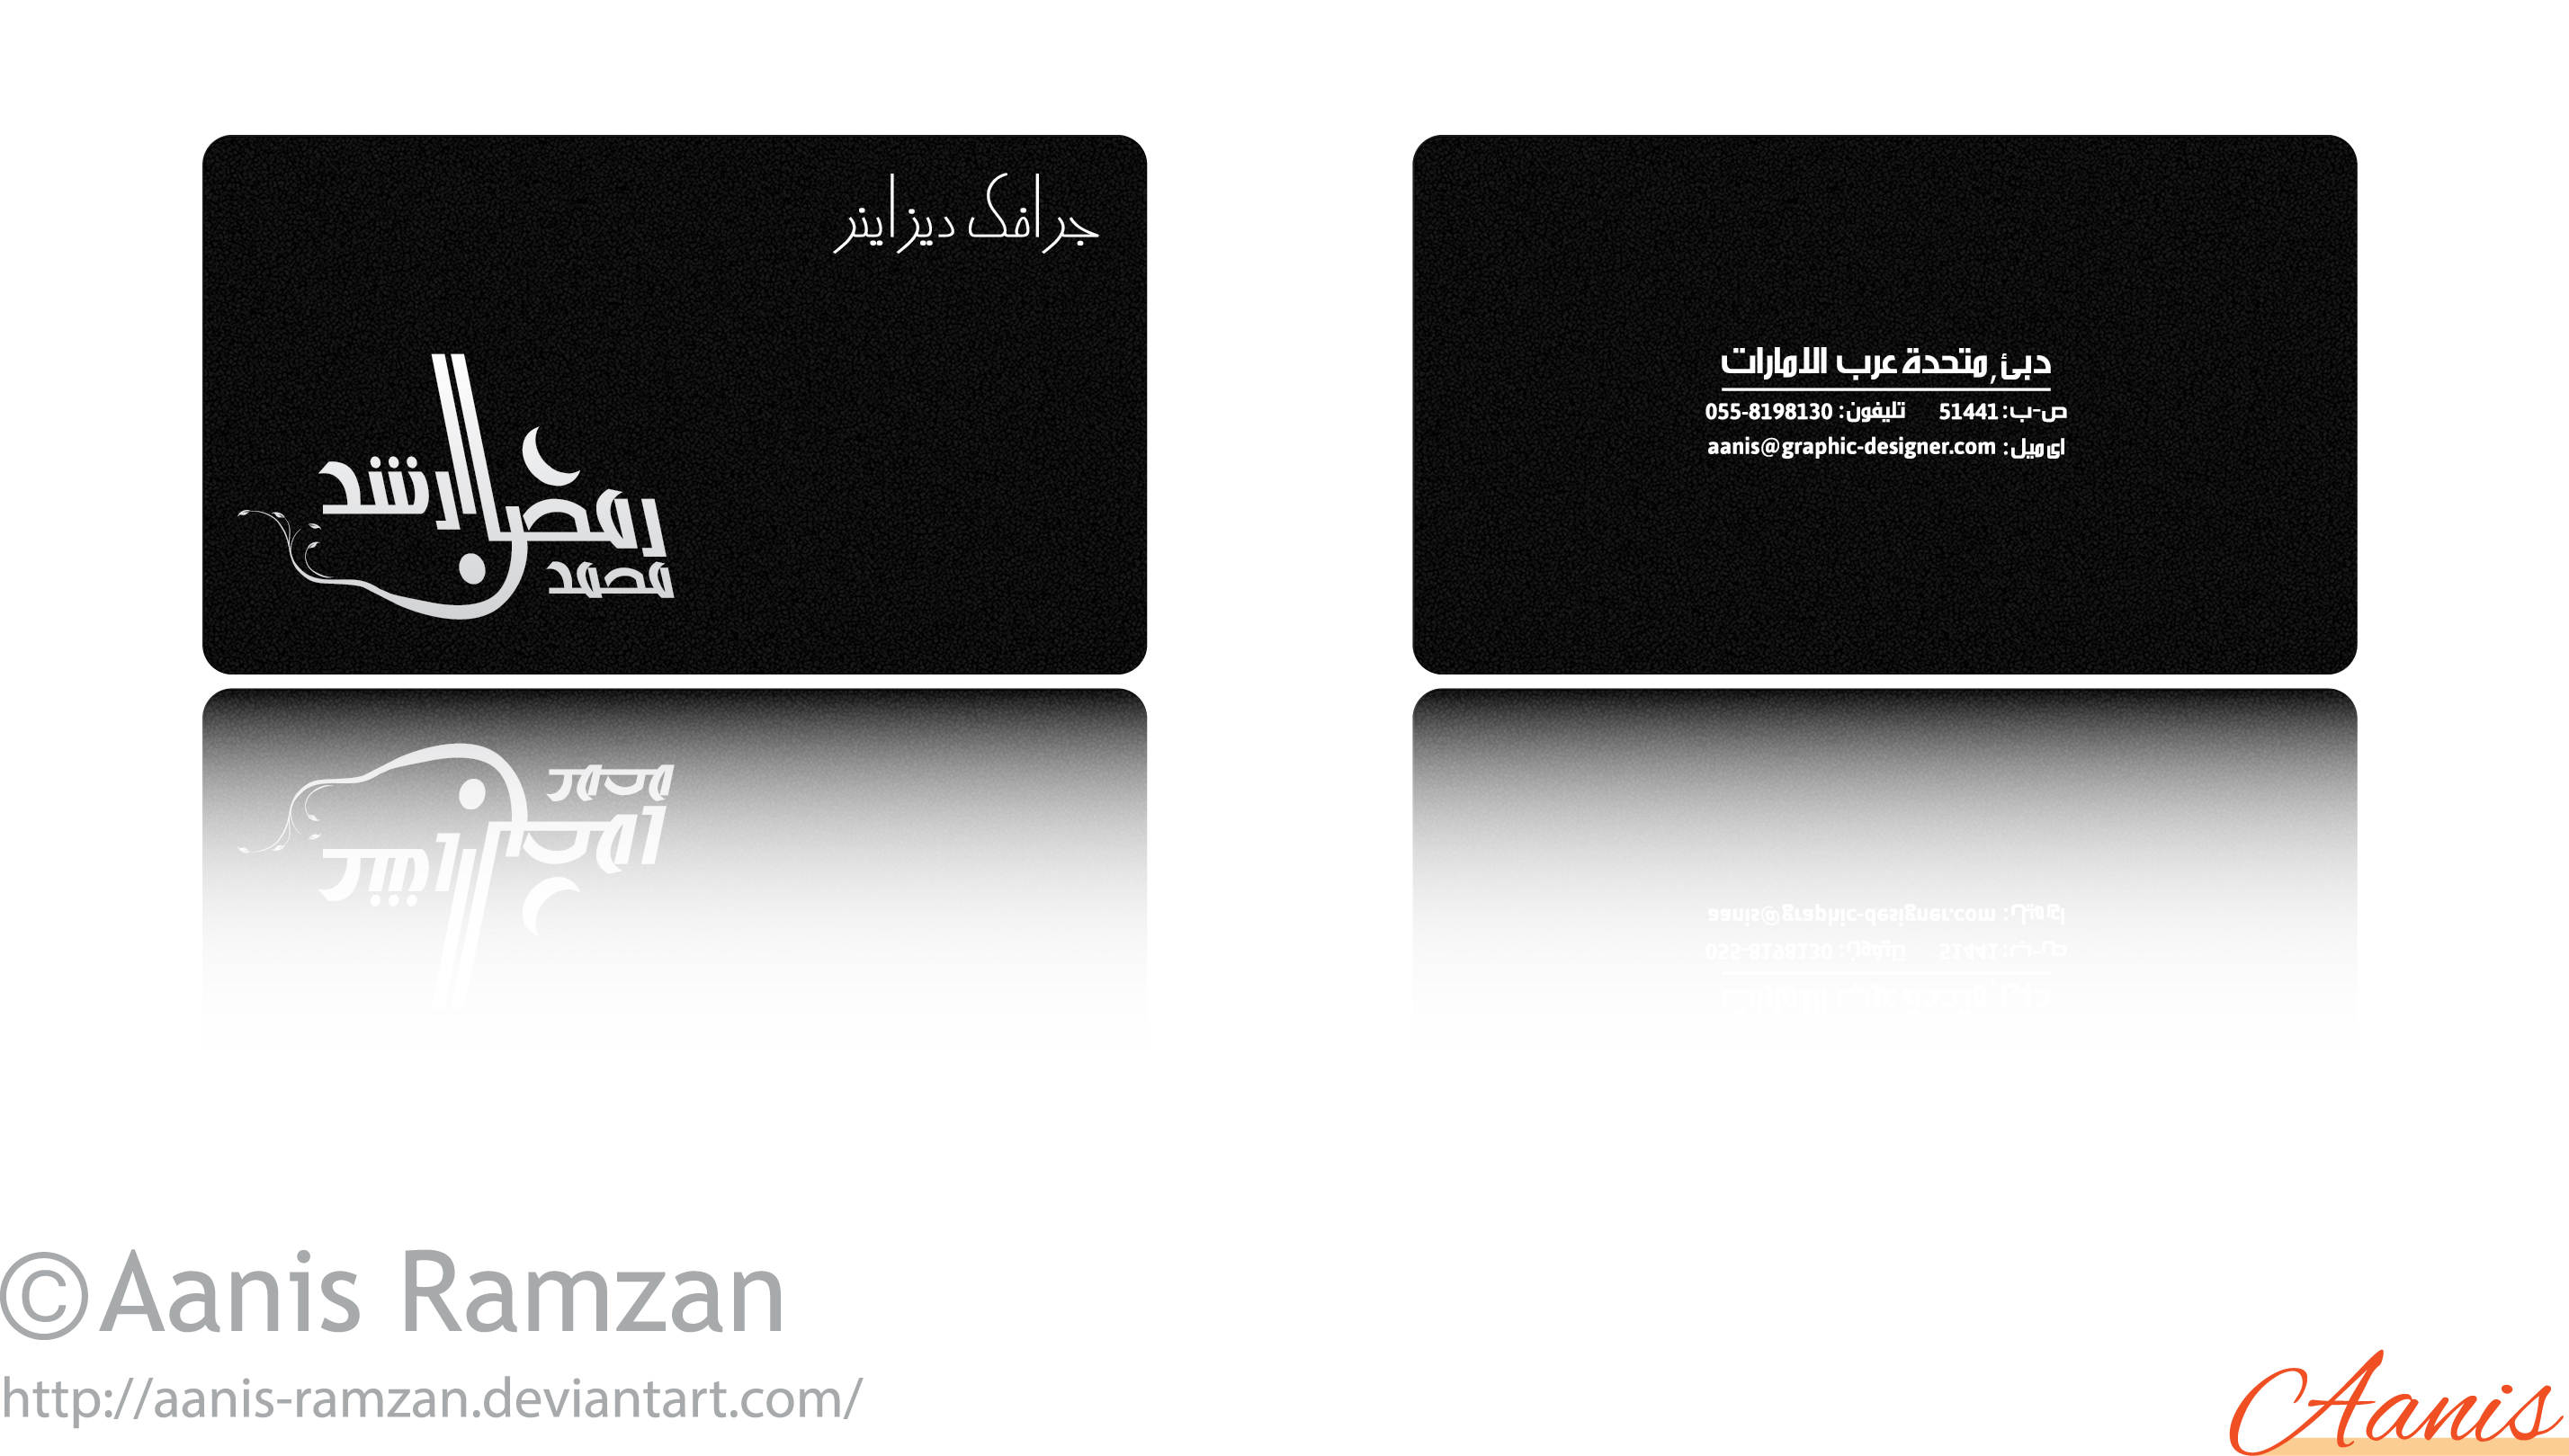 Business Cards 06 by aanis-ramzan on DeviantArt